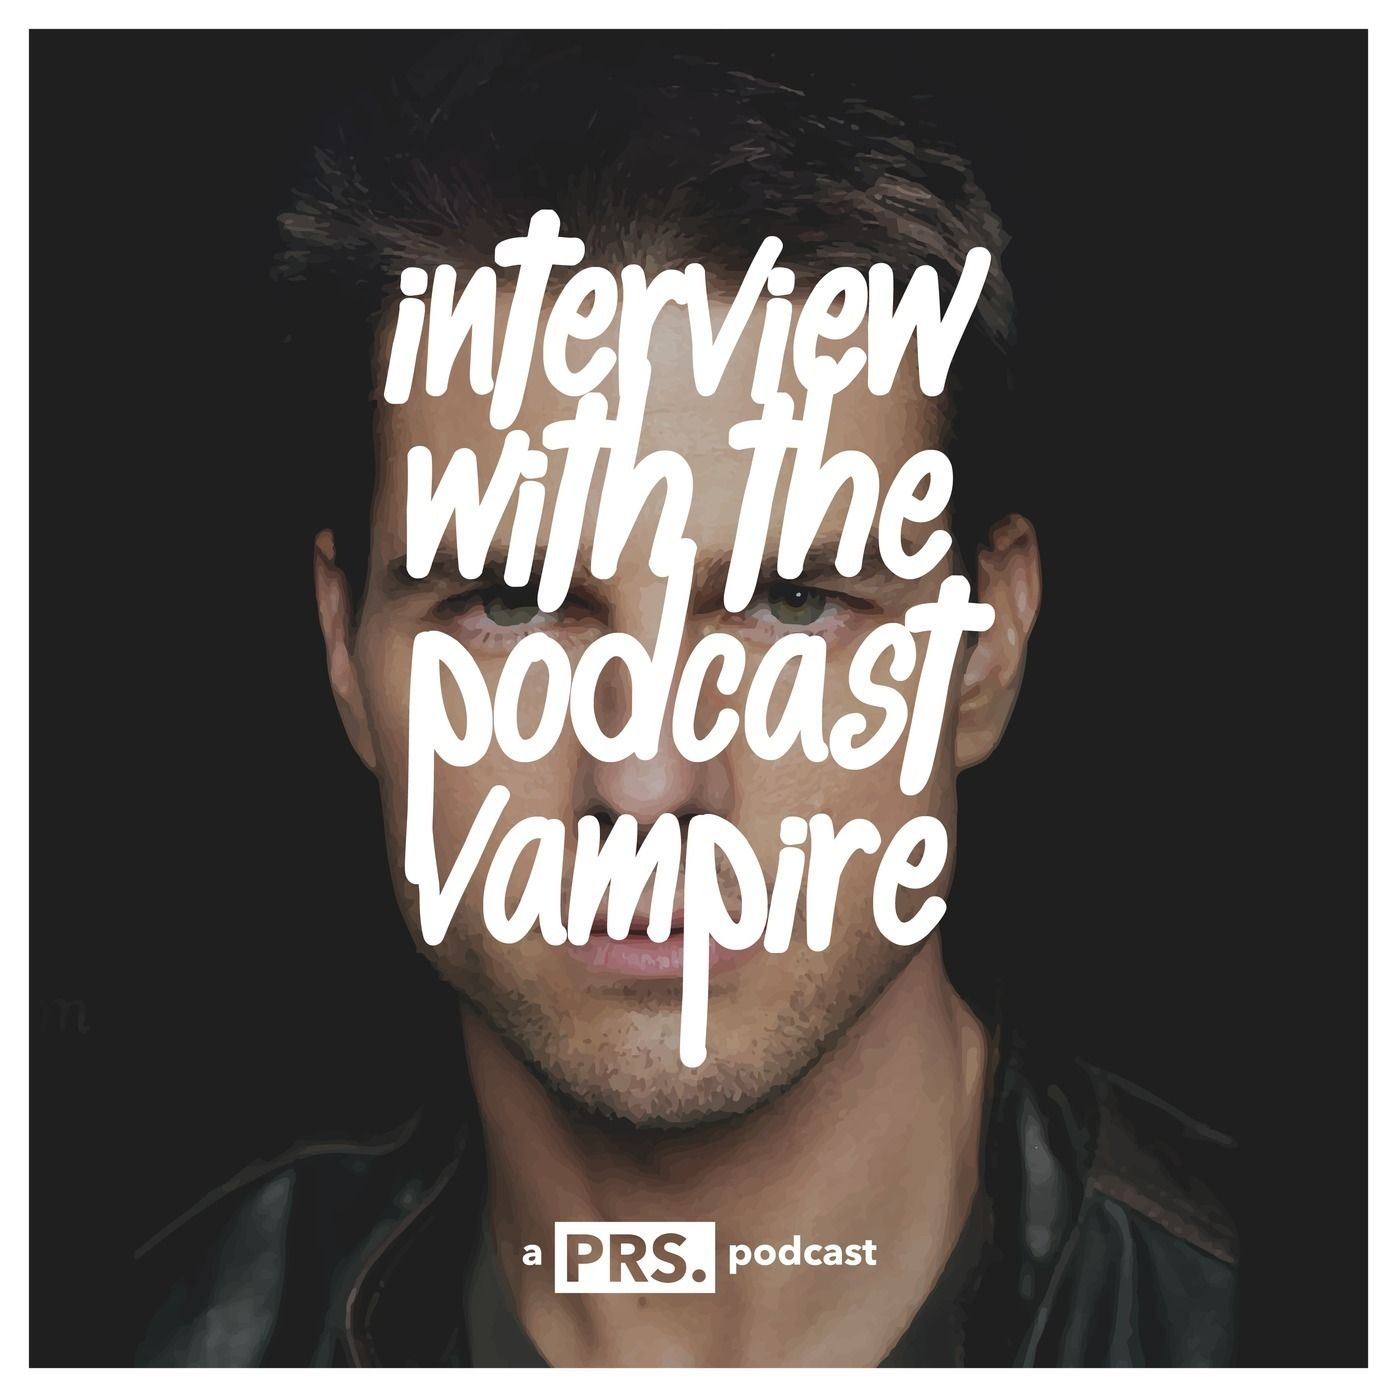 Interview with the Podcast Vampire, presented by Paperkeg